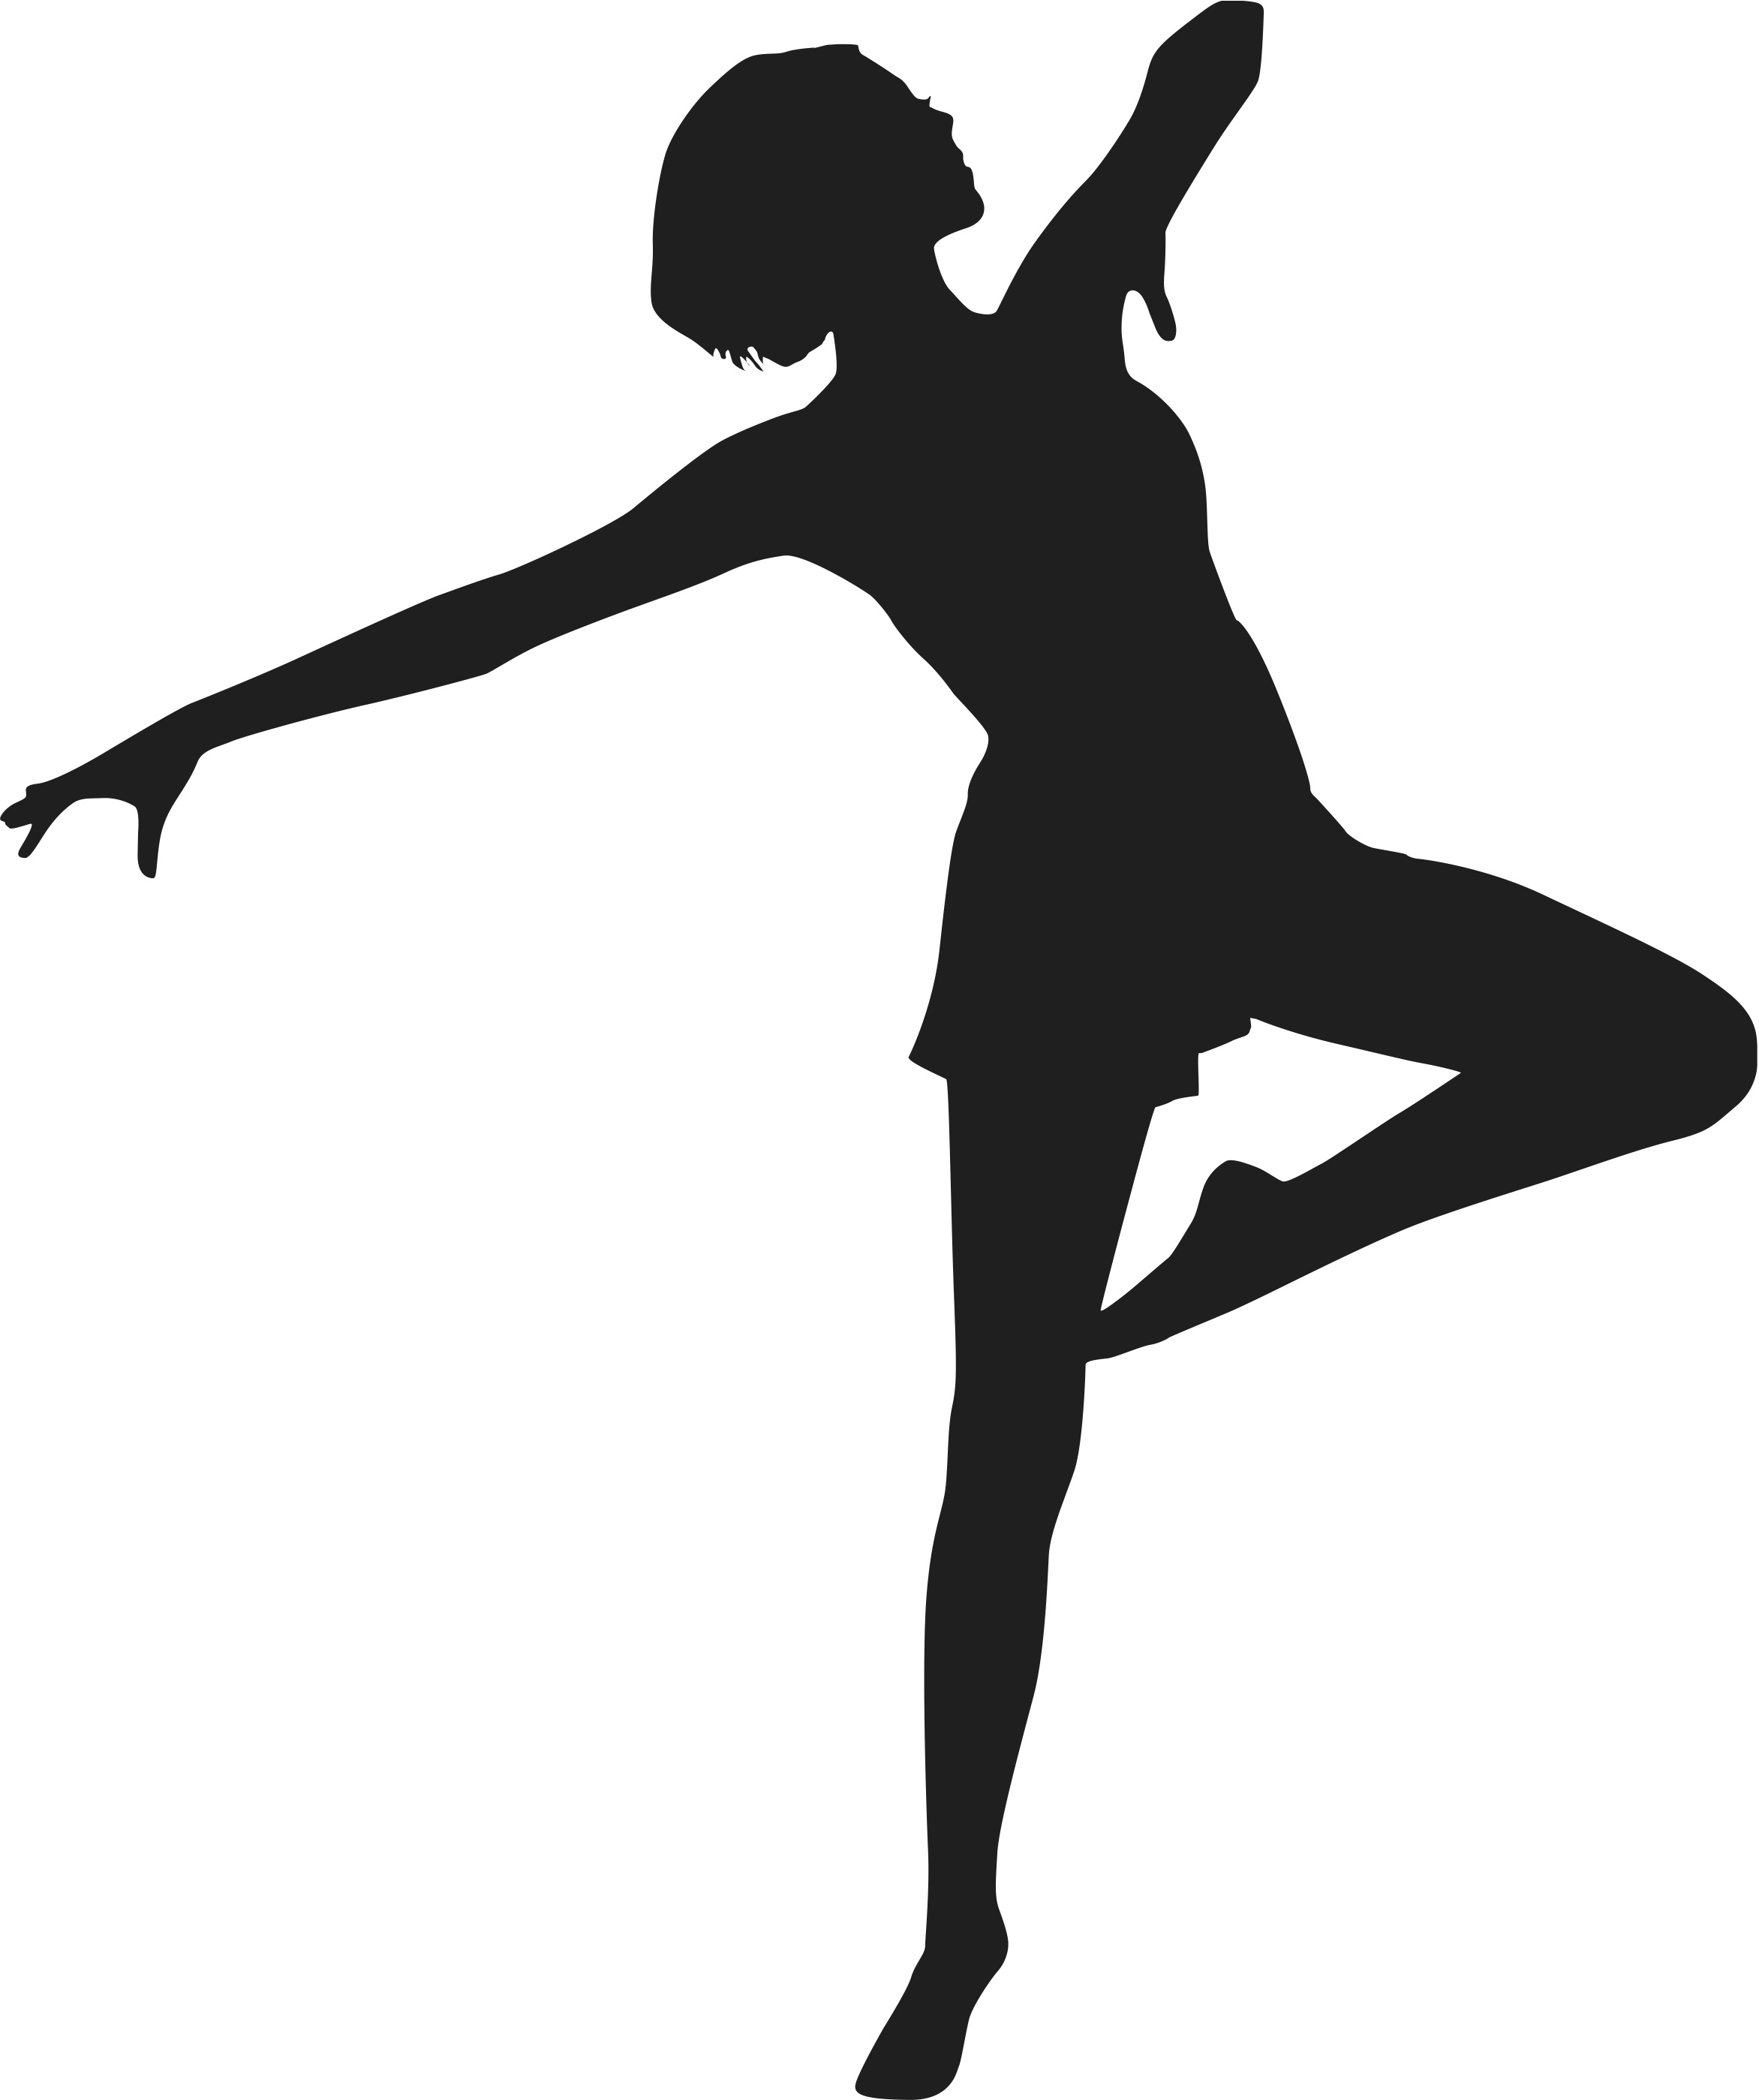 2344x2798 Jazz Dancer Png Silhouette Transparent Jazz Dancer Silhouette.png